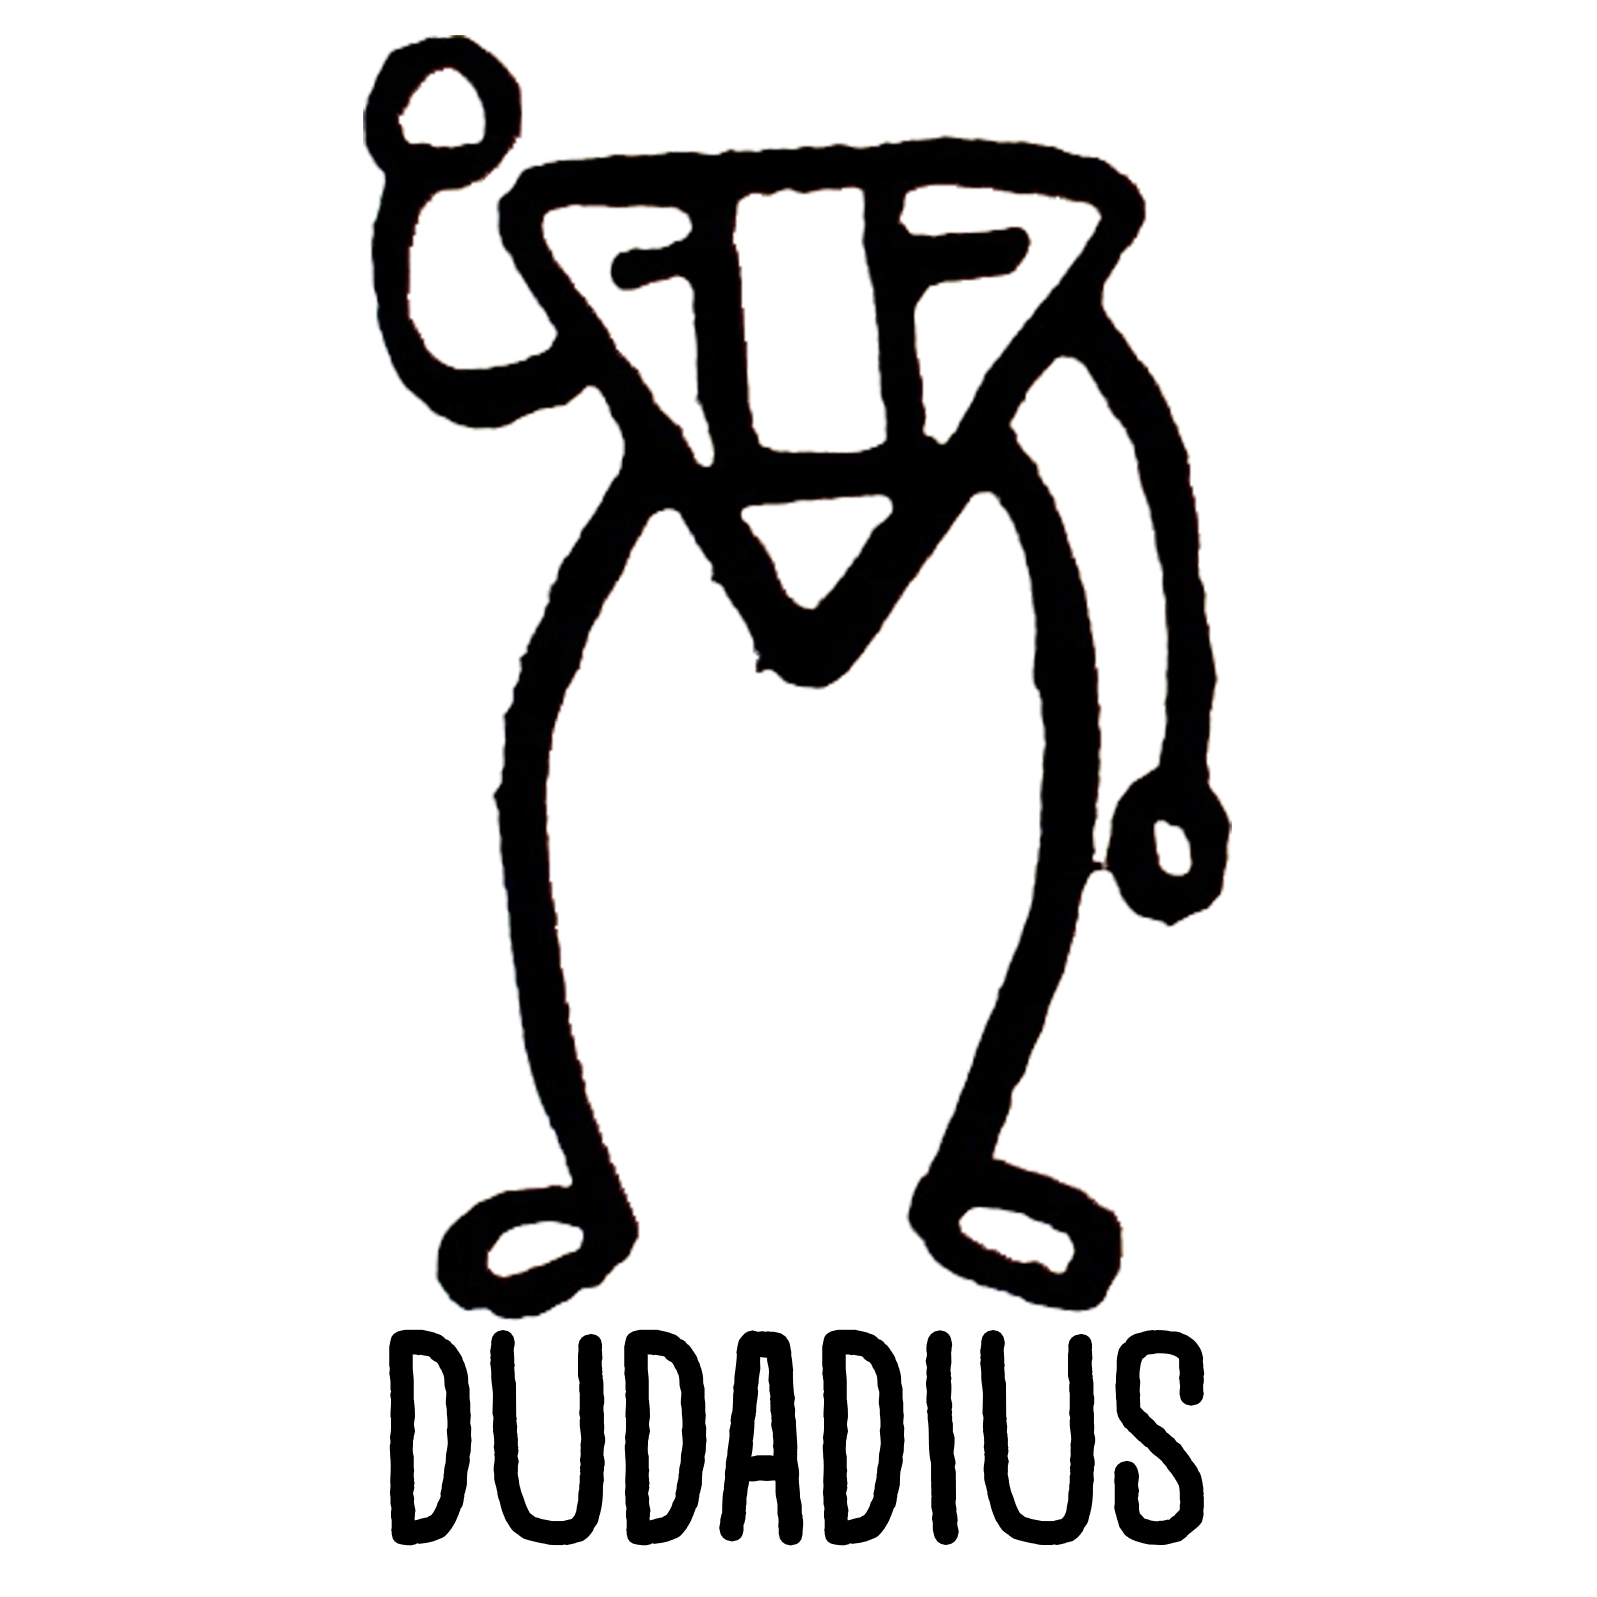 Dudadius performs and records analog and modular synth-based electro. Click for more!